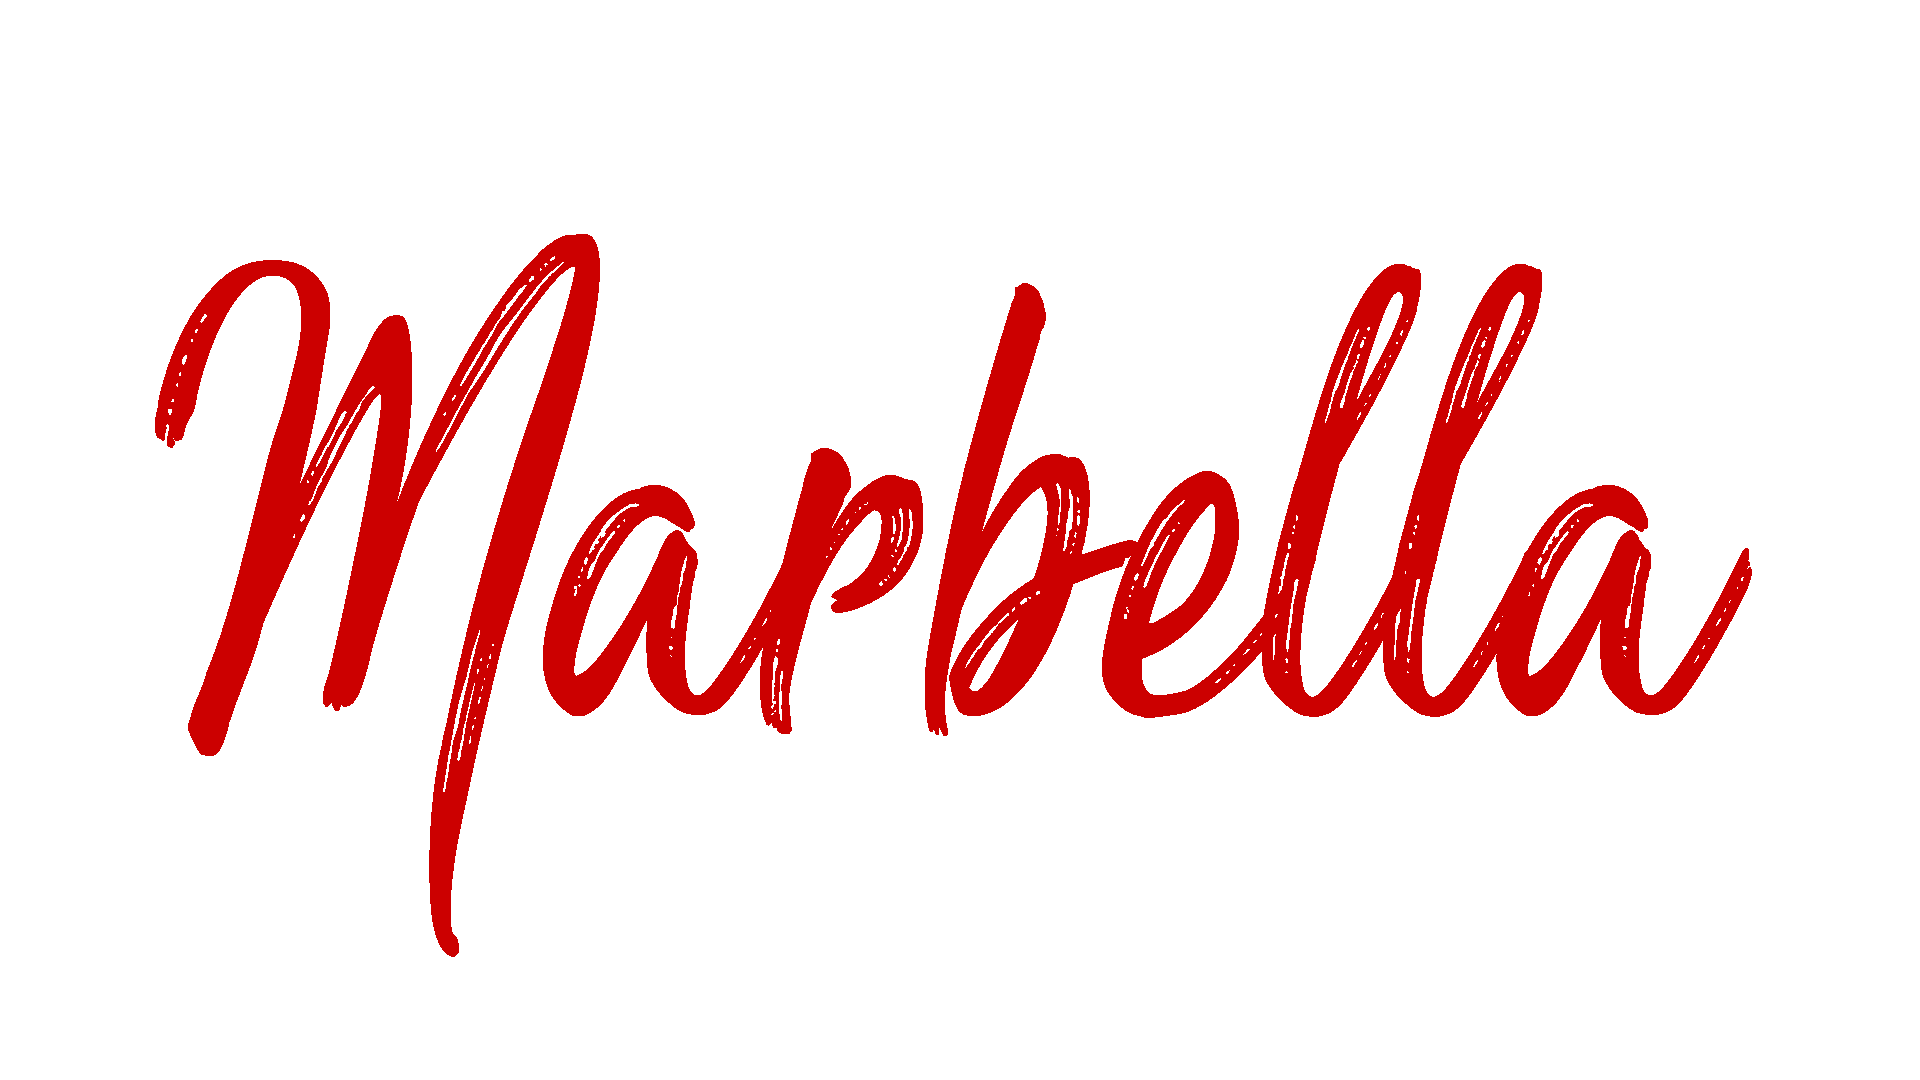 https://www.angelrielo.com/wp-content/uploads/2021/10/Marbella.png